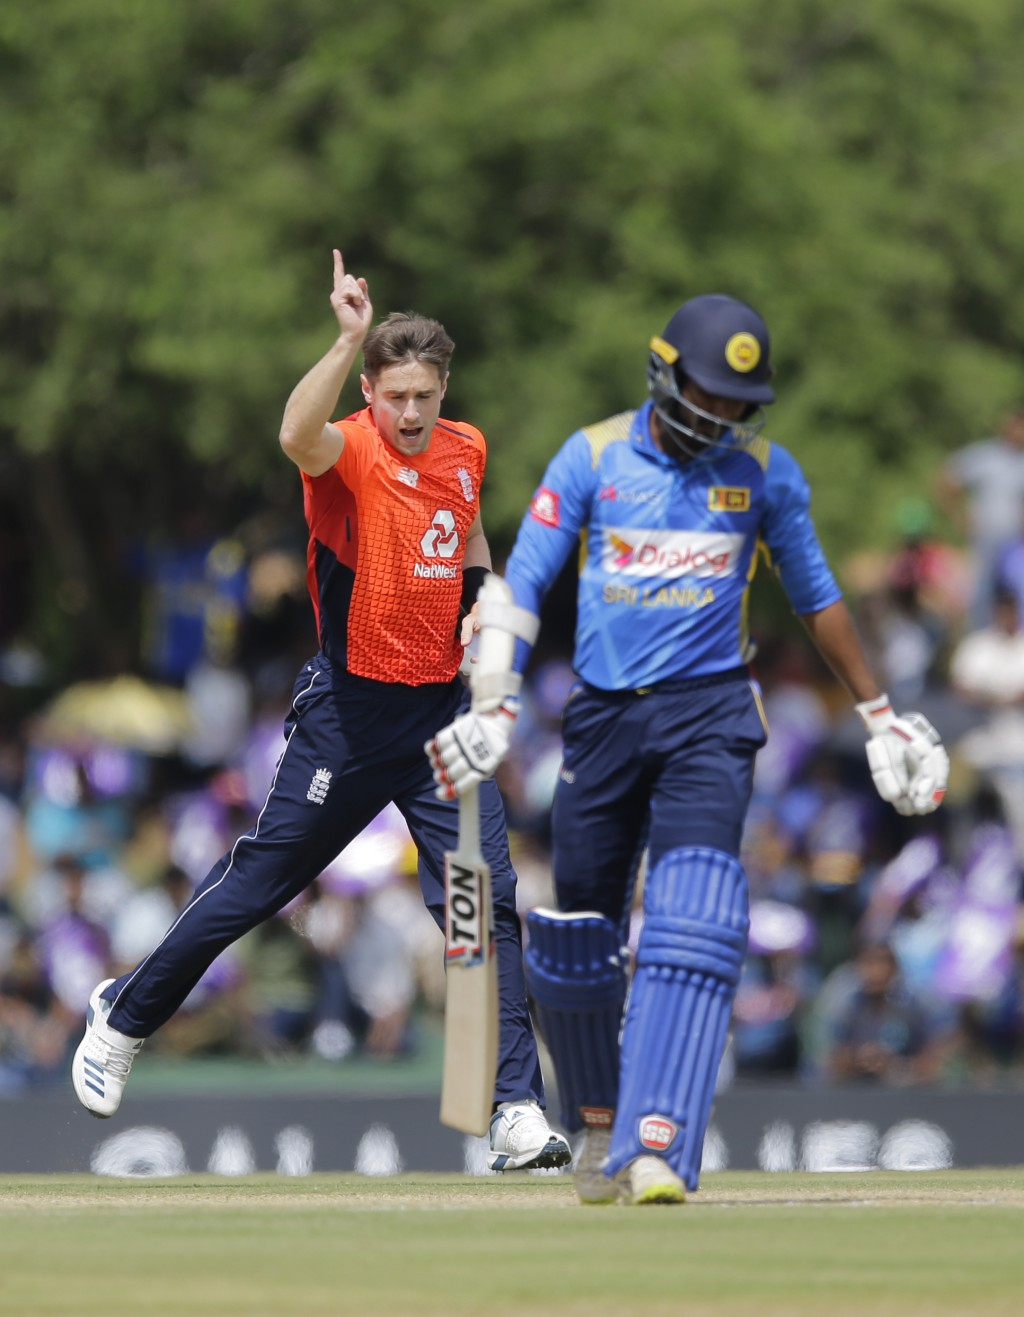 England's Chris Woakes celebrates the dismissal of Sri Lanka's Upul Tharanga, right, during their second one-day international cricket match in Dambul